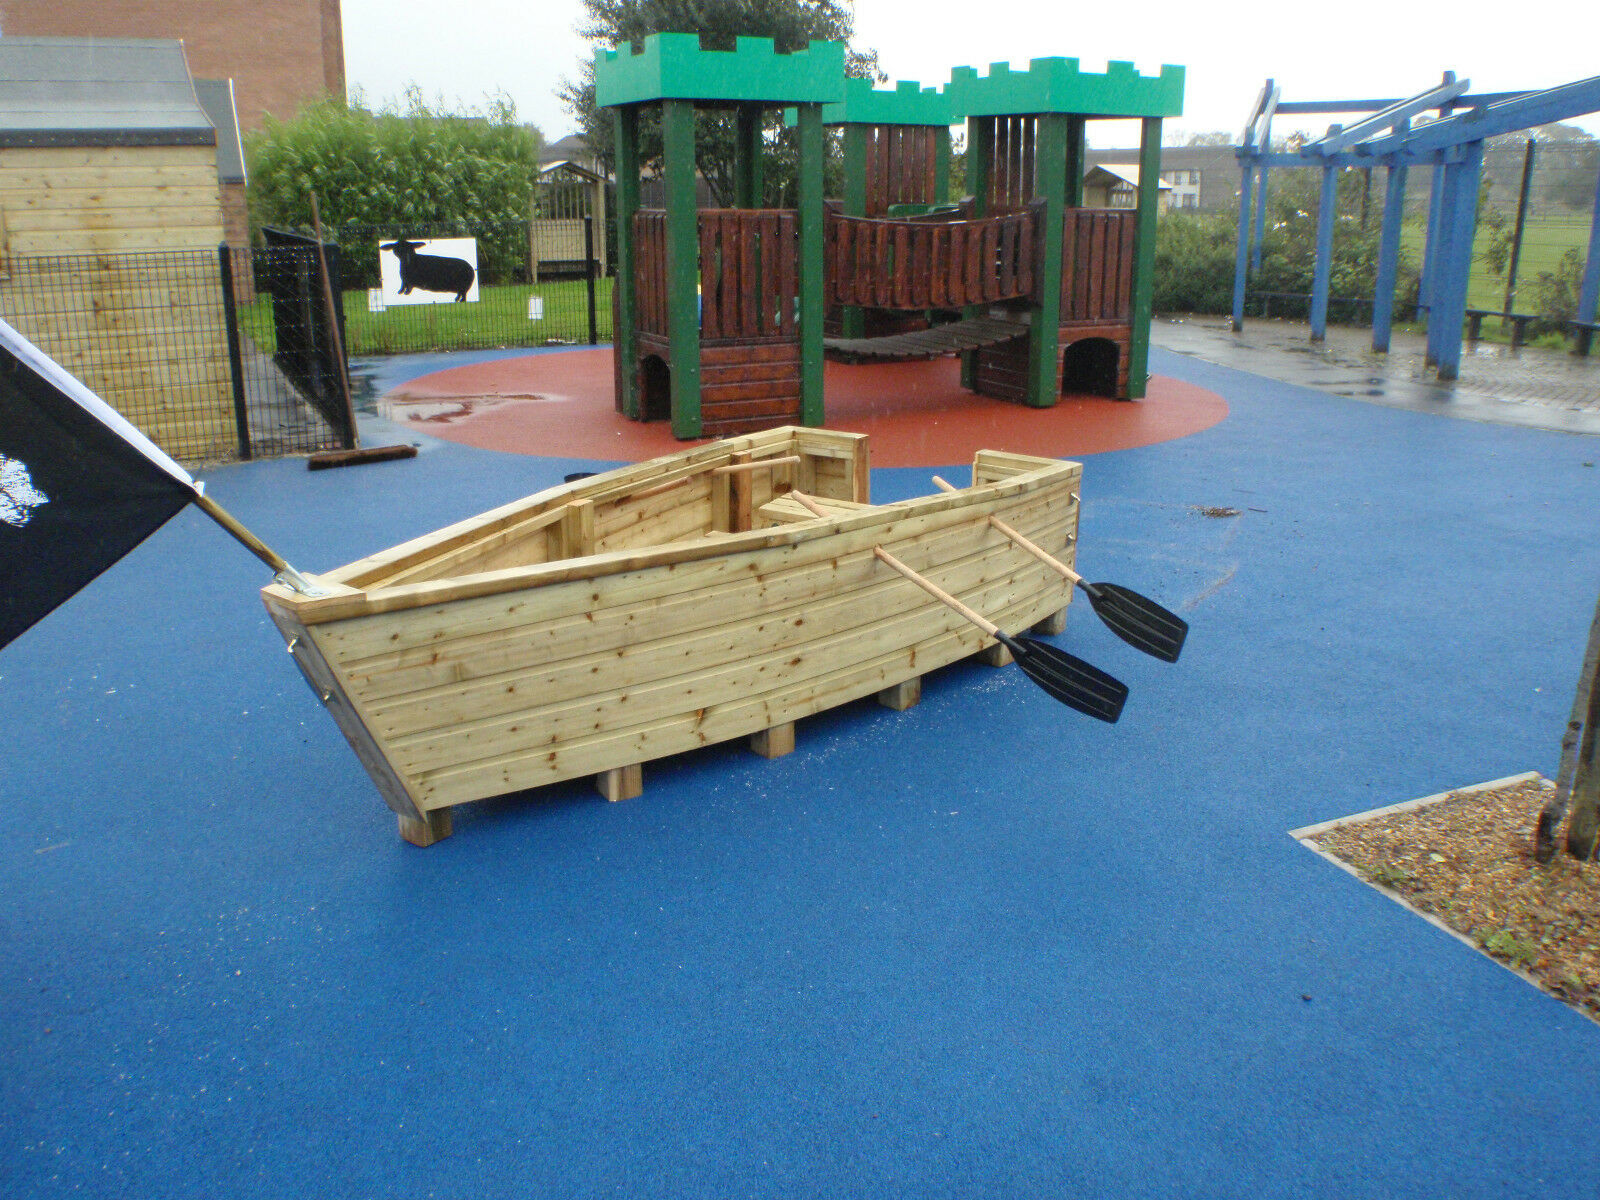 Details About Pirate Ship Boat Wooden Playgroup Creche Playground Outdoor School Great Value